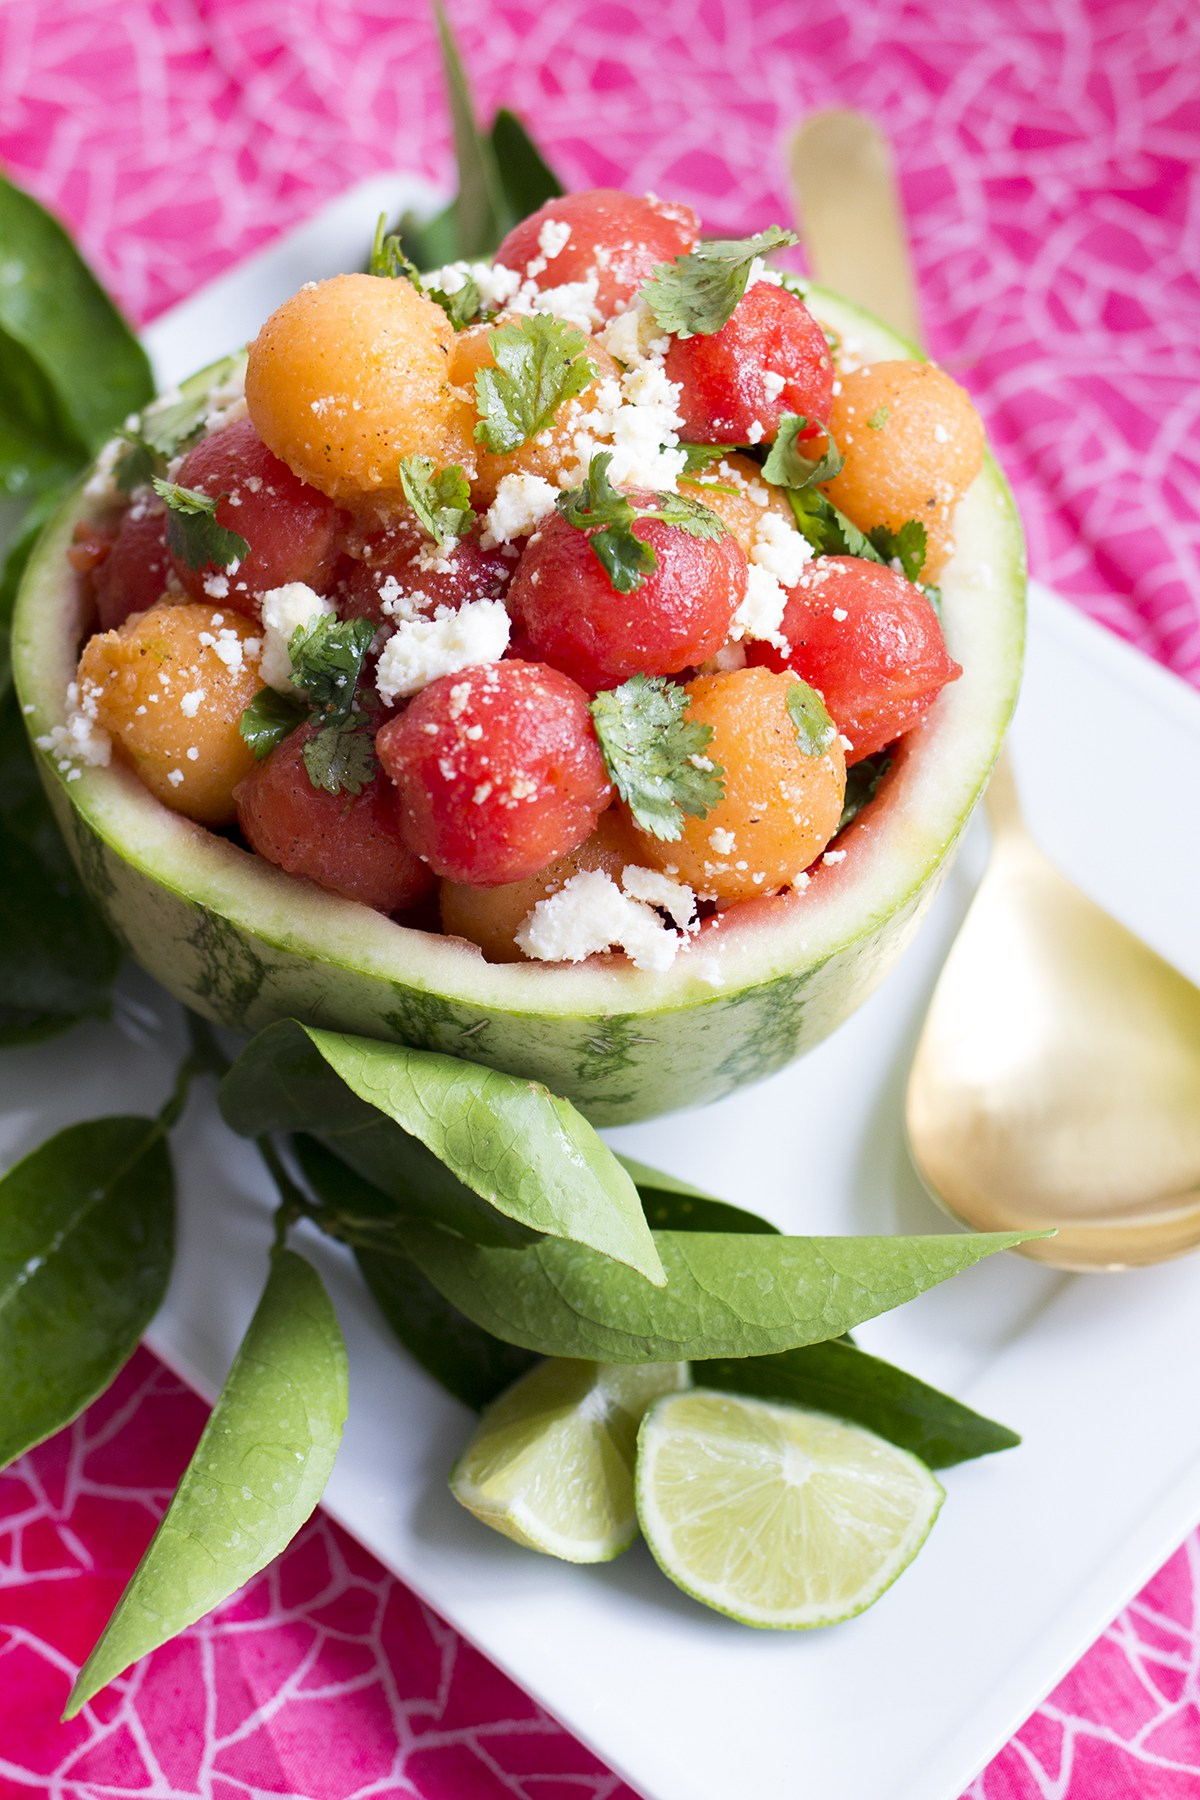 Watermelon salad from Freutcake